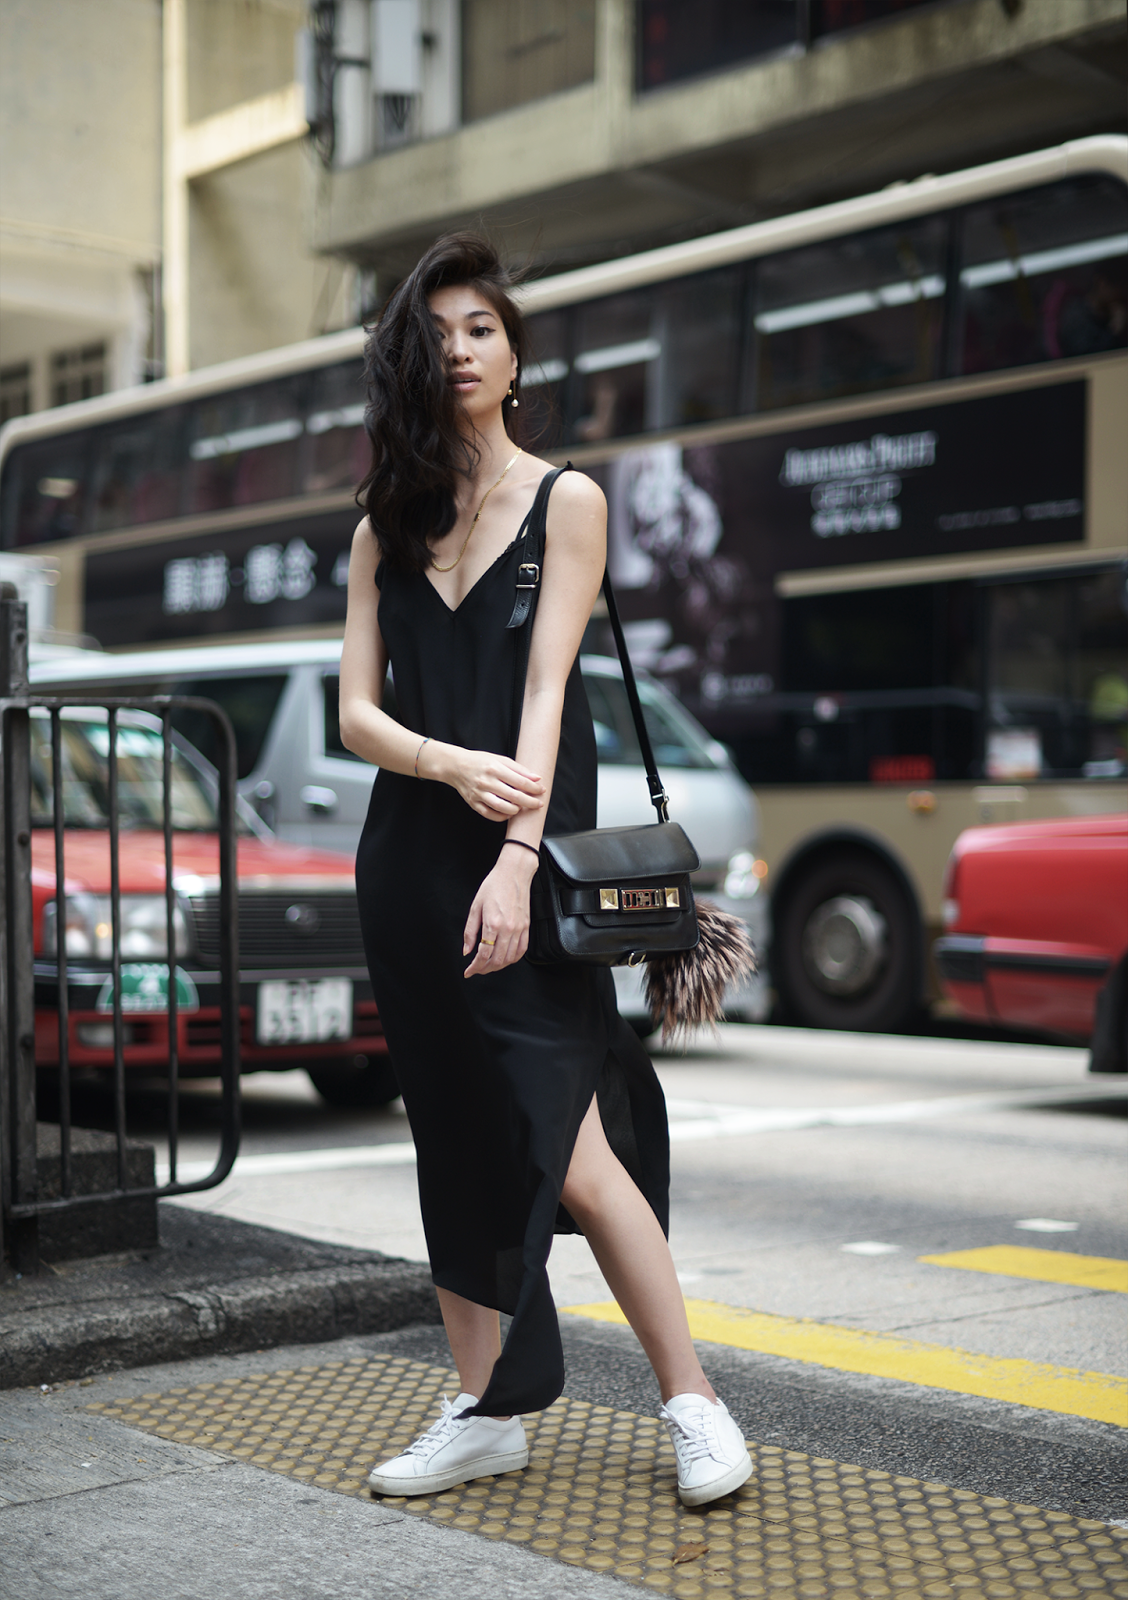 Asymmetric Slip Dress by Raey in Hong Kong / Raw / FOREVERVANNY.com